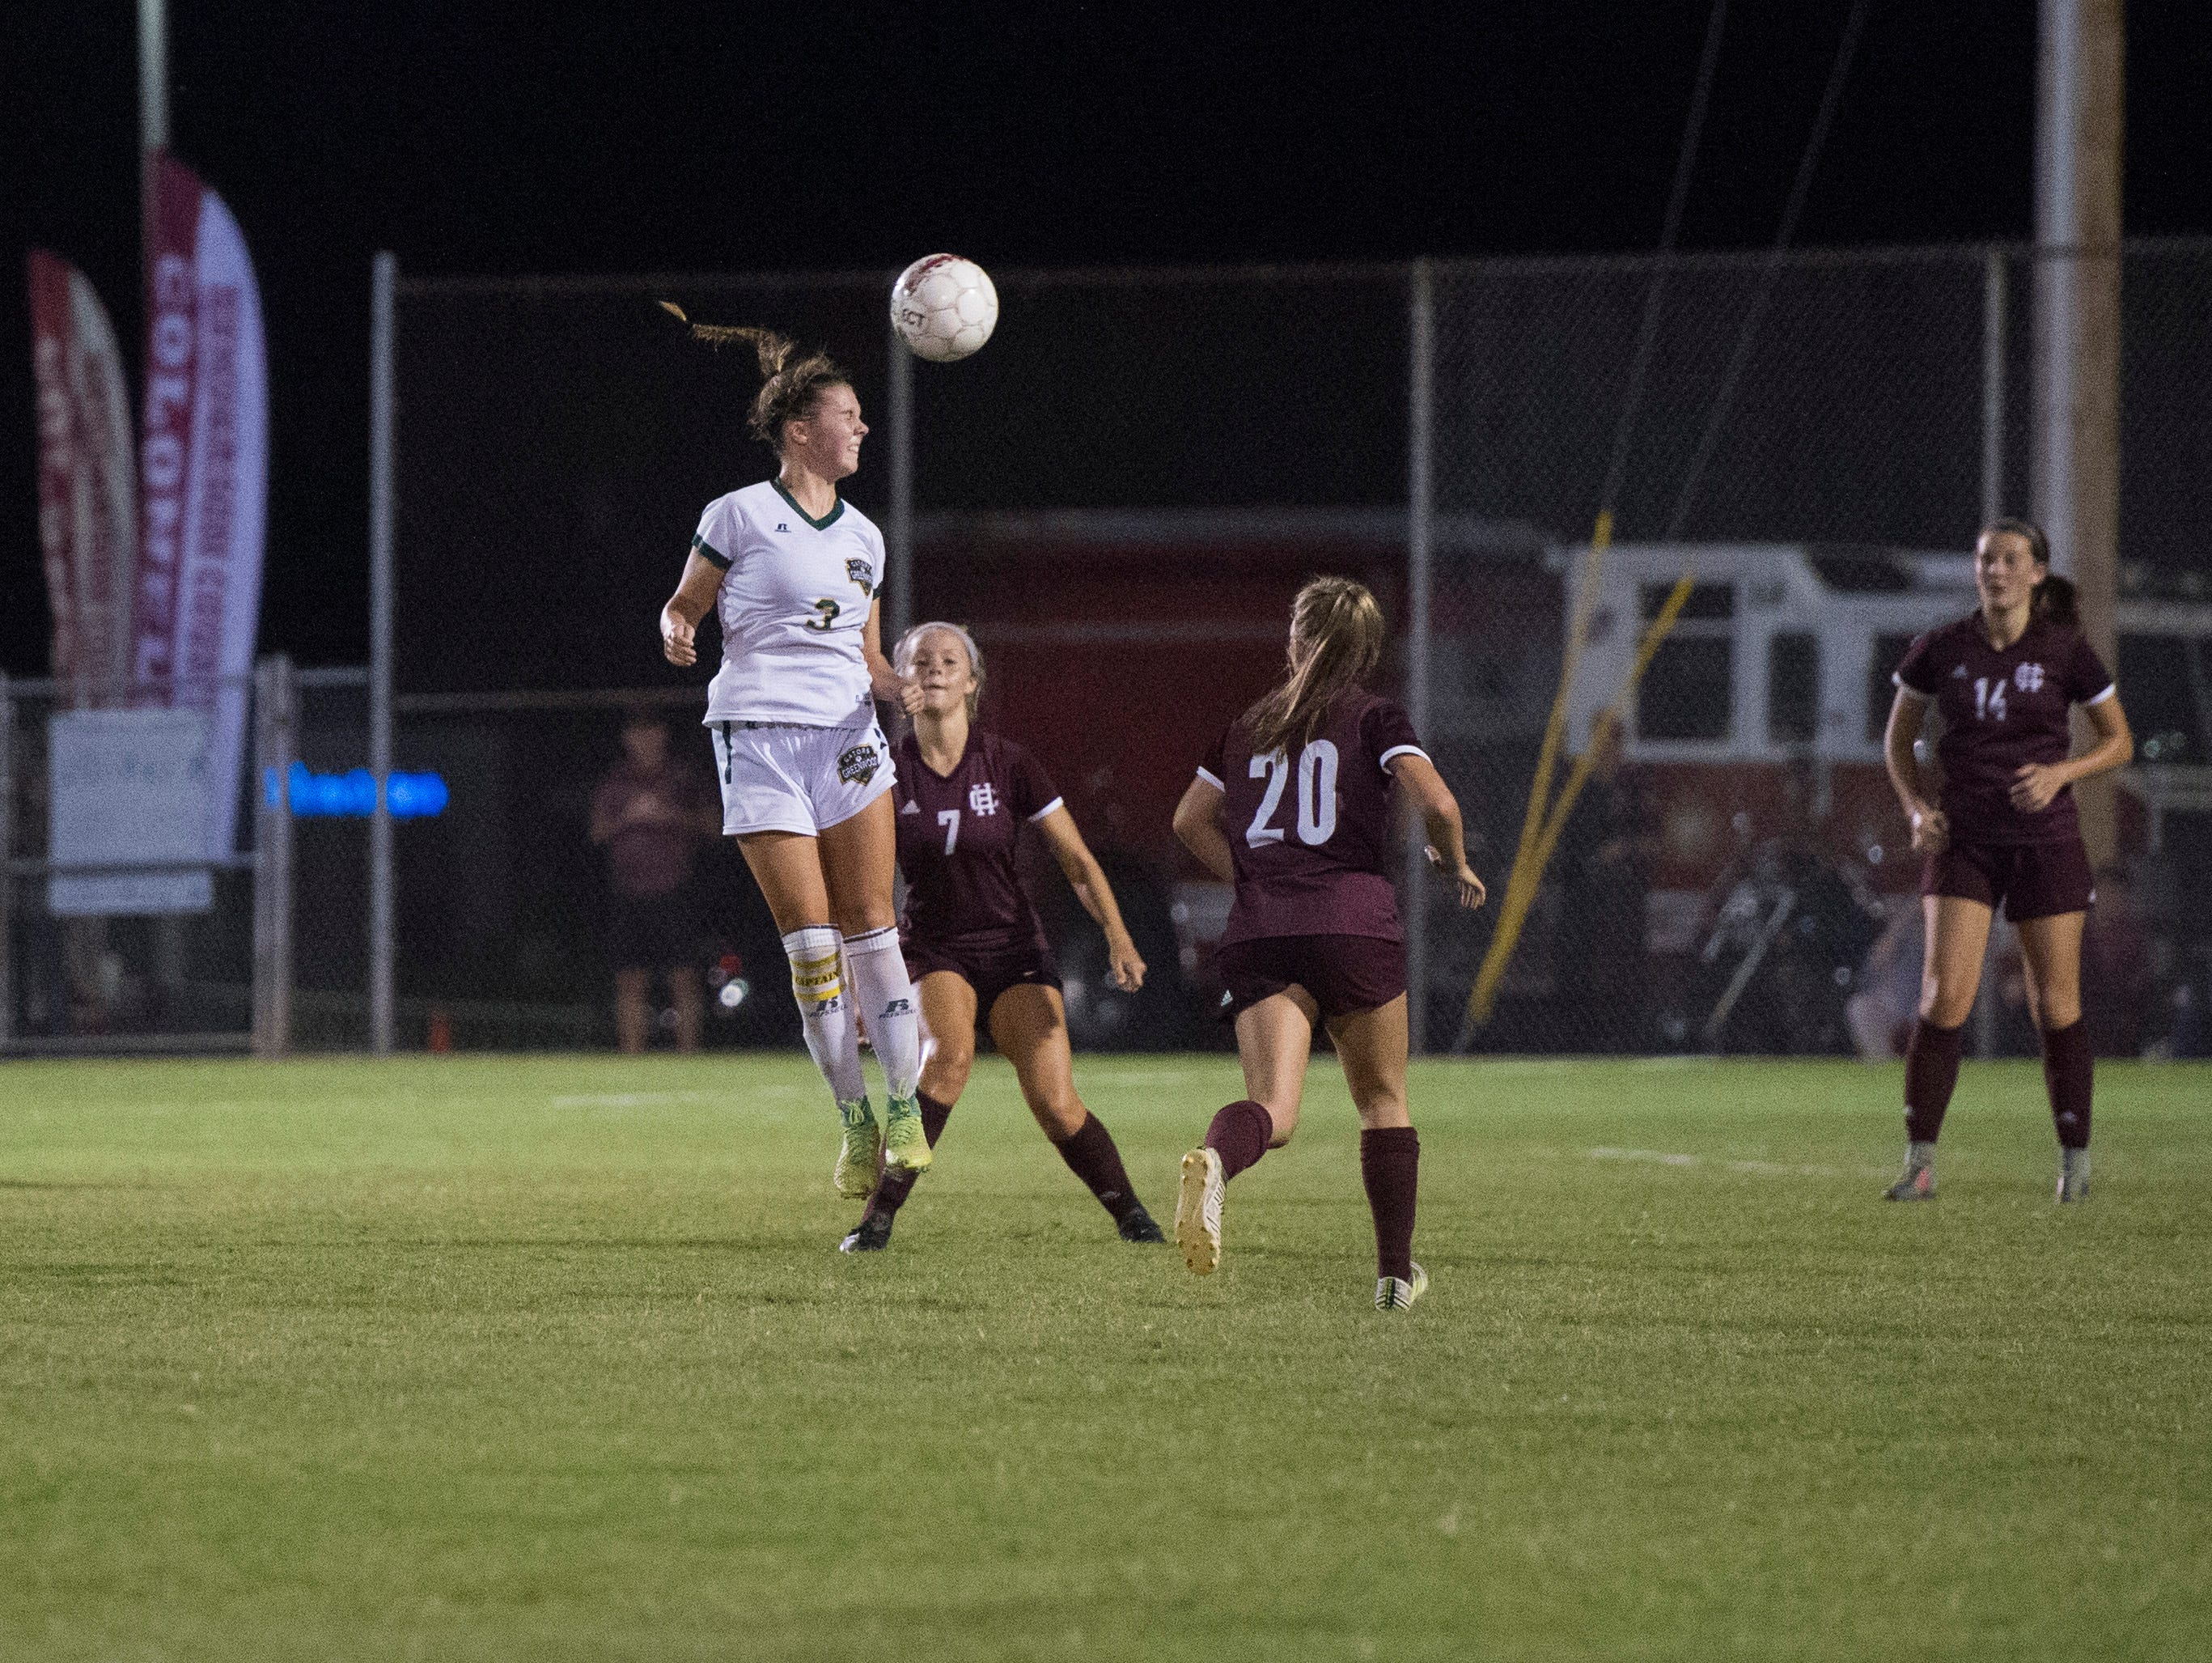 Greenwood's Anna Haddock (3) heads the ball during the Henderson County vs Greenwood match at Colonel Field in Henderson, Ky., Monday, Oct. 1, 2018. The Gators defeated the Lady Colonels, 4-2.